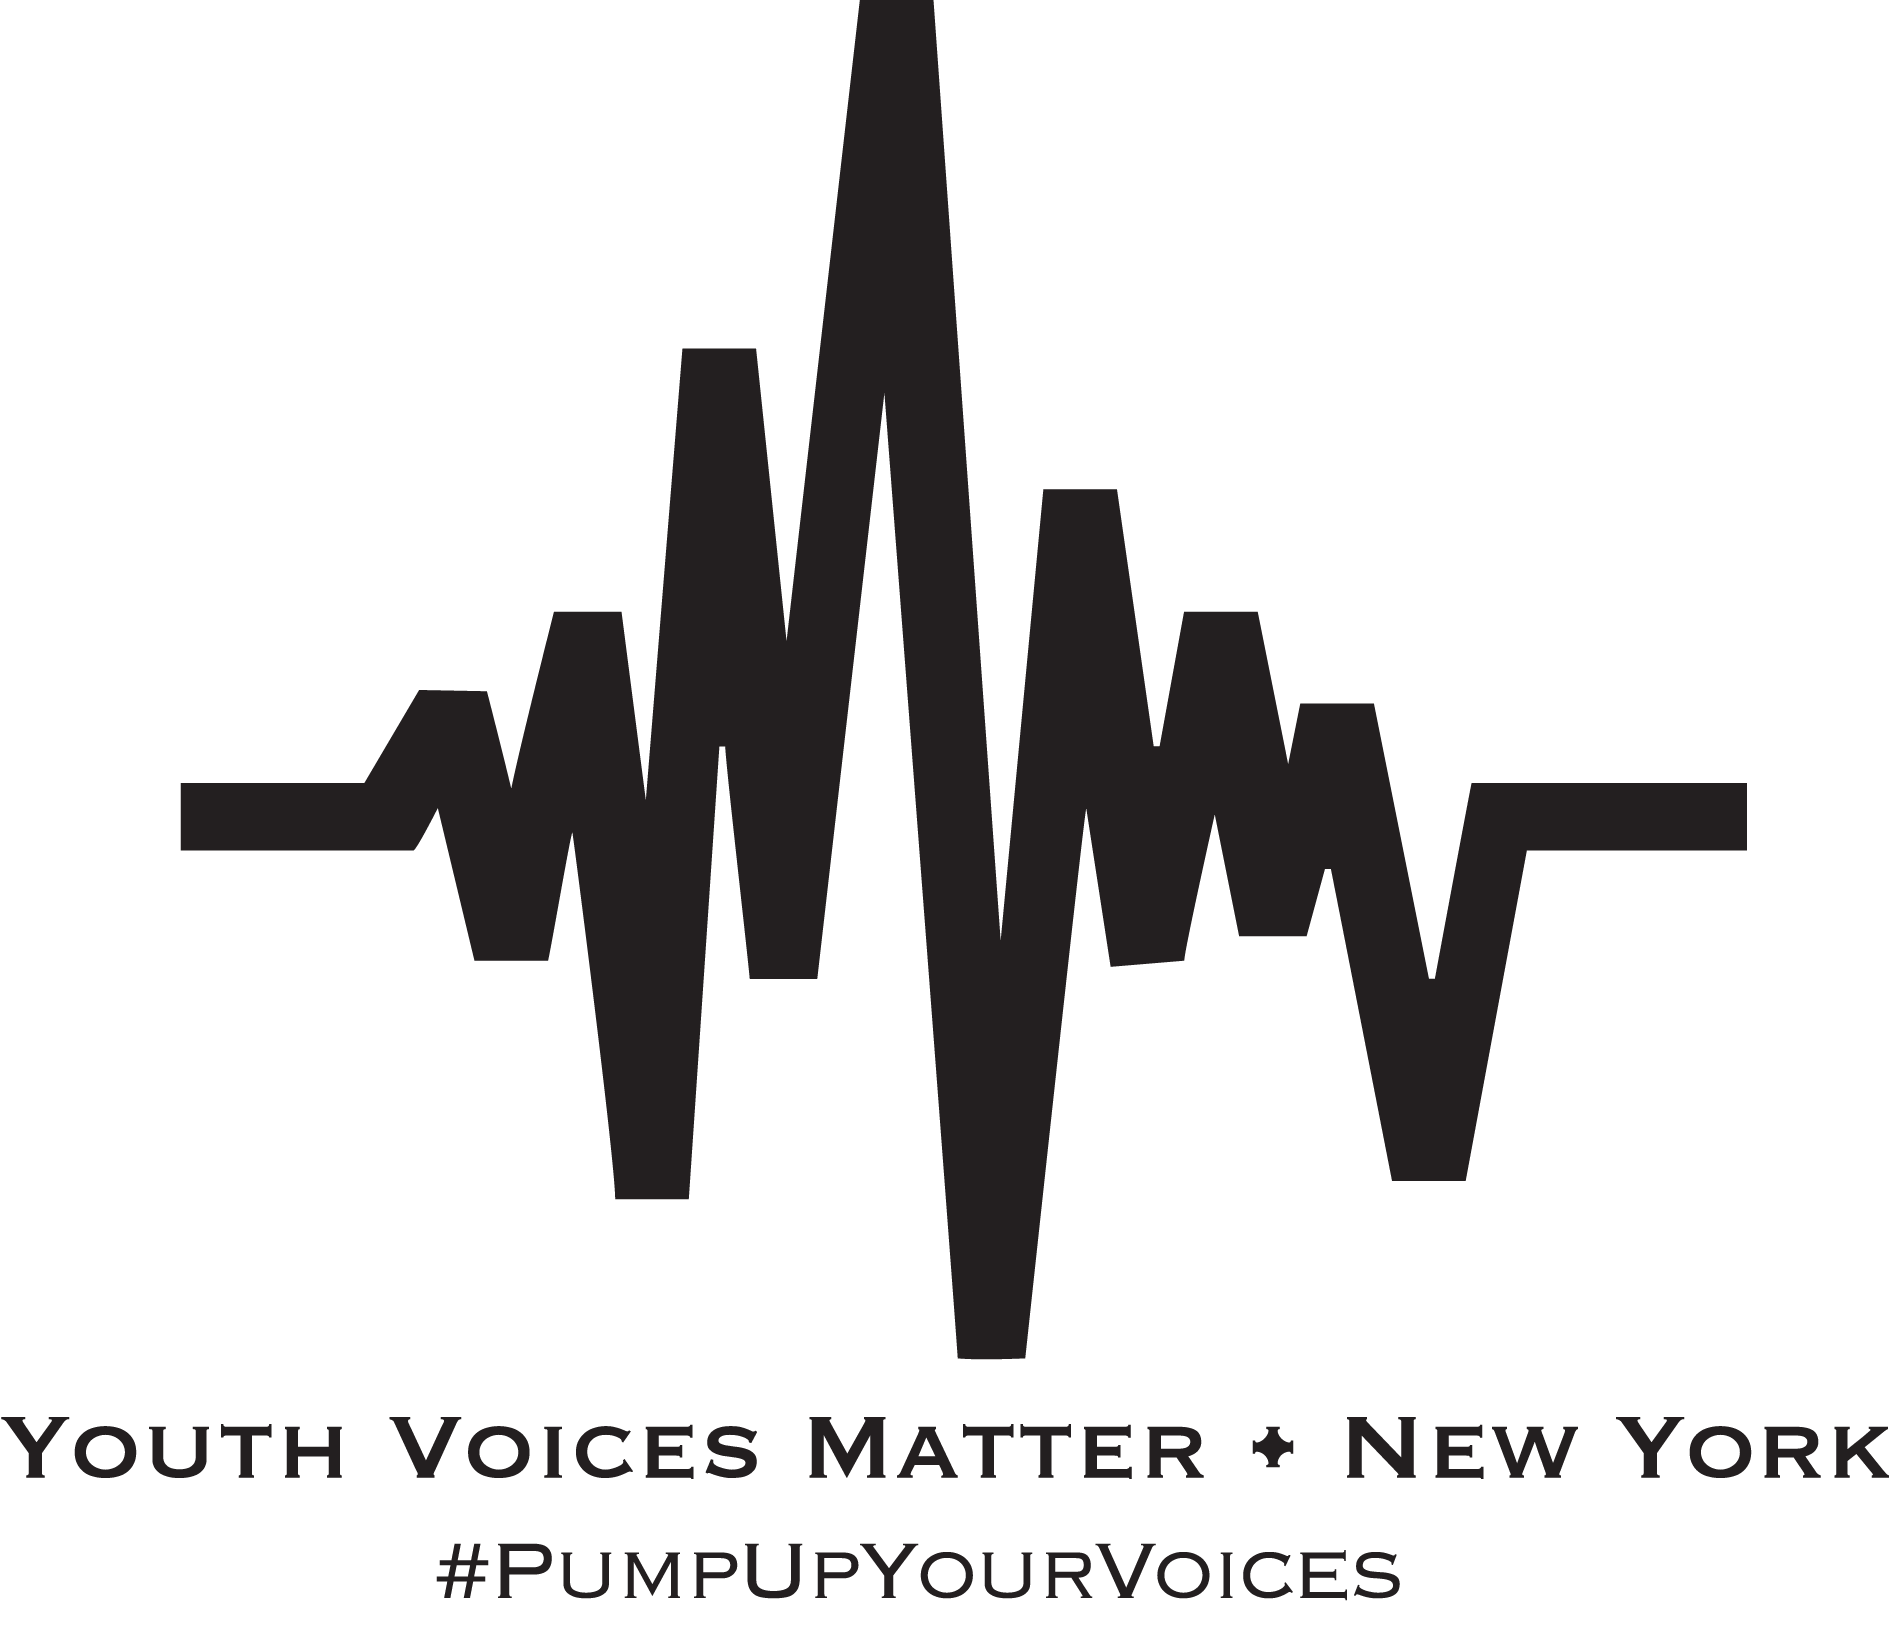 "What is the ""VOICE"" in Youth Voices Matter - Hey everyone! Carlee here from Youth Voices Matter-NY. I wanted to talk a little bit about what the ""voice"" means in Youth Voices Matter.We've all felt ""voiceless"" at one point or another. We've all been in situations where we felt like there was nothing we could do to help ourselves. This is especially true for youth and young adults struggling with life's challenges. For me, being voiceless was most apparent during my struggle with substance use. I was unable to use my voice to create positive changes in my life. The disease of addiction silenced me. I was unable to advocate for what I needed or talk about the real issues plaguing my life.Now that I'm three years and ten months clean, I have found my voice. Most importantly, I use it. I speak up about what recovery really is and how great my life has become. Don't get me wrong, I have my bad days. But, by having the ability to use my voice and find confidence in myself, I can make it through life's challenges. One of the biggest examples of how I use my voice is by trying to get rid of the stigma around substance use disorder. Having this disease is nothing to be ashamed about. There is help out there and recovery is possible. In addition to that, I advocate on behalf of youth and young adults across the state. I have dedicated my work and life to empower others to find and use their voices too.So what does your voice sound like? Or rather, what is it saying? Are you in a state of voiceless-ness? Do you need help finding your voice? Youth Voices Matter-NY is dedicated to amplifying the voices of individuals across New York State. We can help you find your voice and make real changes in your community. Whether it's hosting a fun pop-up event or having a discussion about some of the unmet needs in your area, YVM-NY wants to hear from you!Use your voice. Speak up and speak out! This is Carlee   #ReadMeRoar    #PumpUpYourVoices"